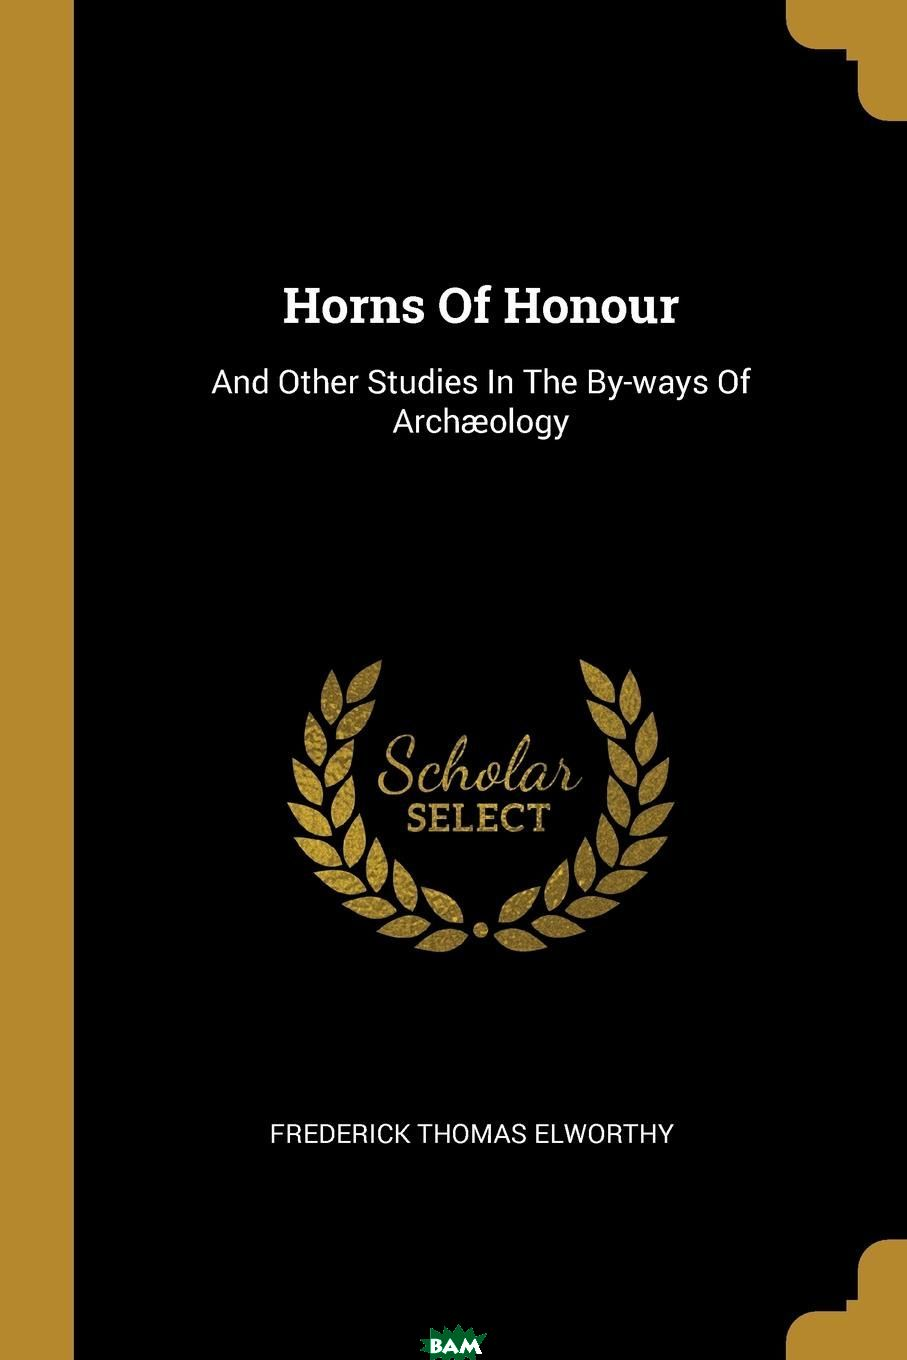 Купить Horns Of Honour. And Other Studies In The By-ways Of Archaeology, Frederick Thomas Elworthy, 9781011331345